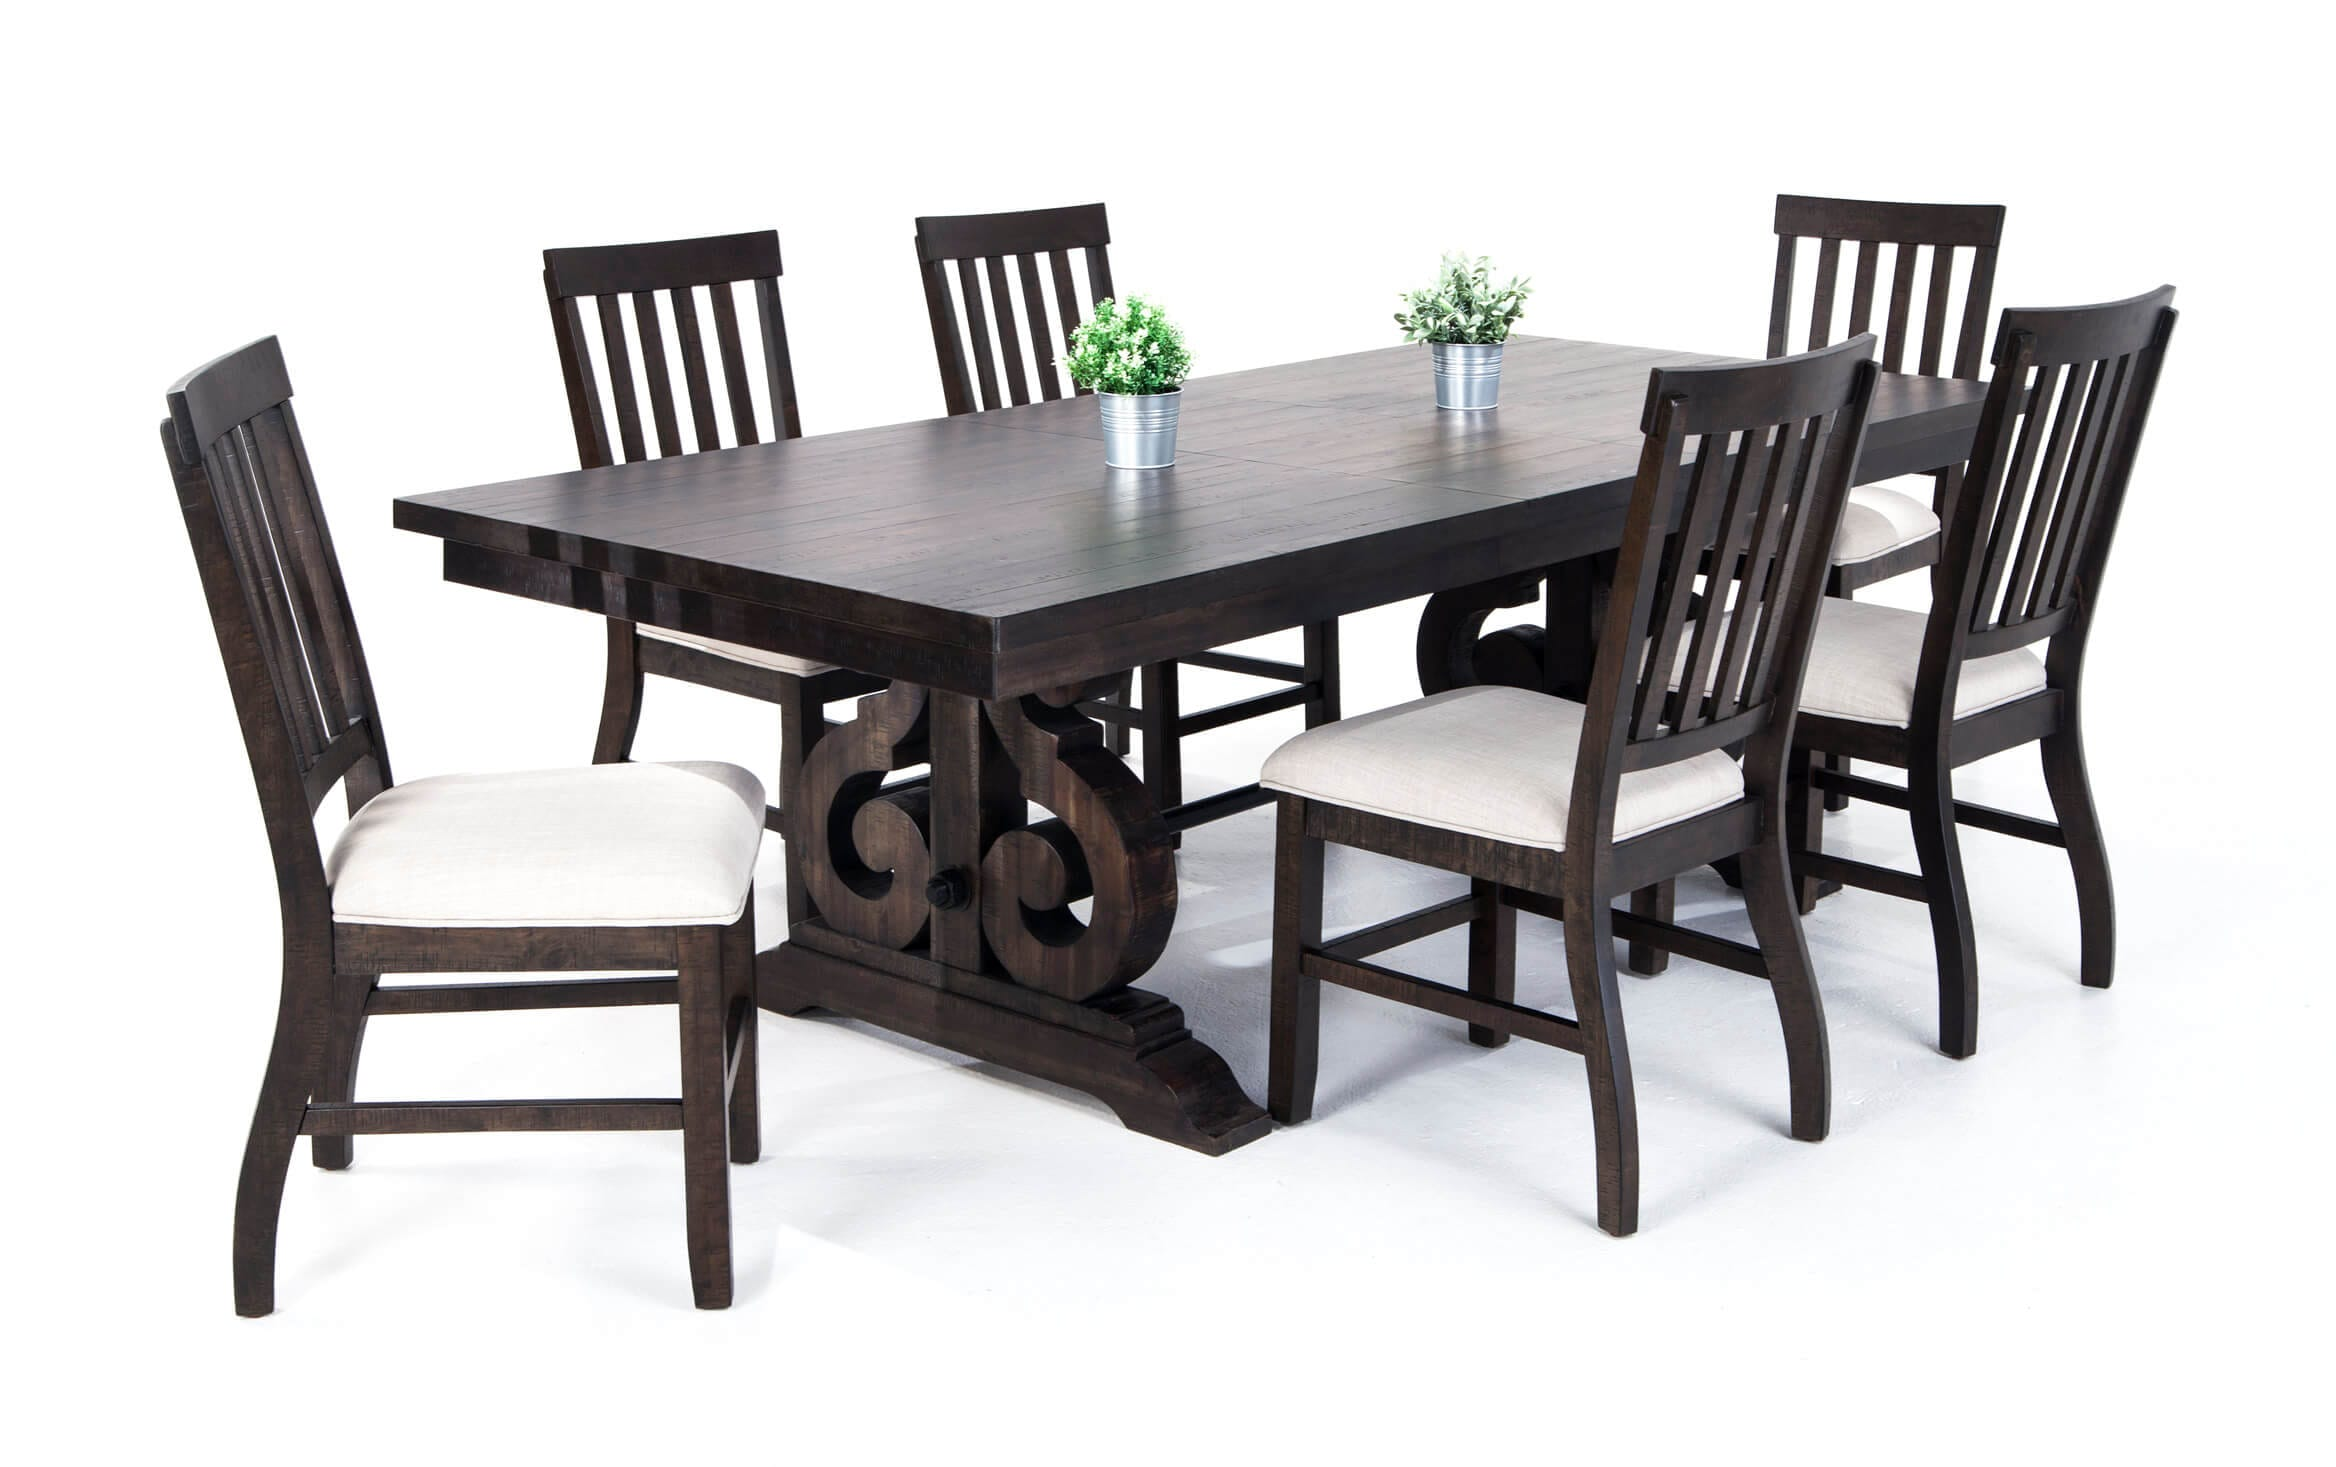 Sanctuary 7 Piece Dining Set With Slat Chairs Bobs Com